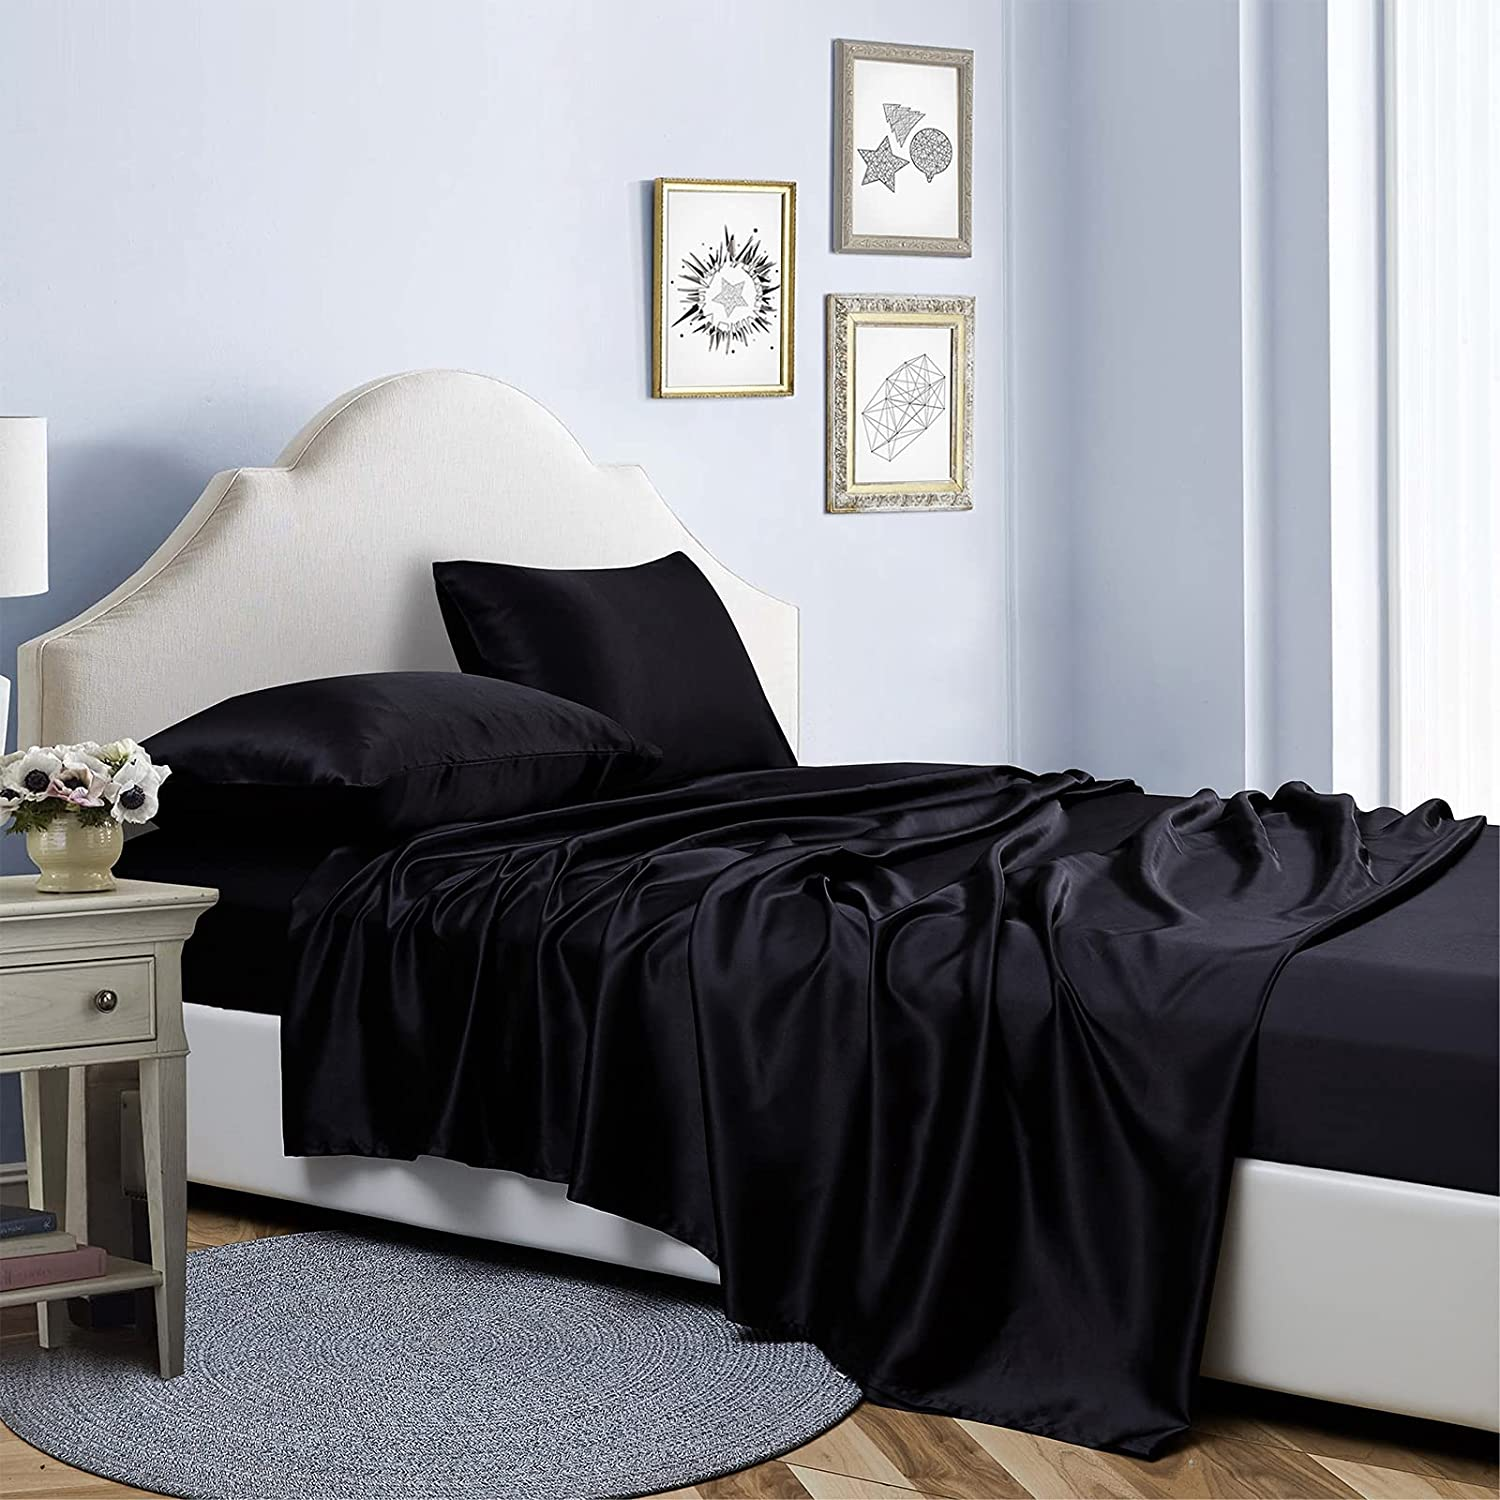 Bonlino Satin Be super welcome Sheets Set Black Online limited product 4 Size King Shee Bed Piece